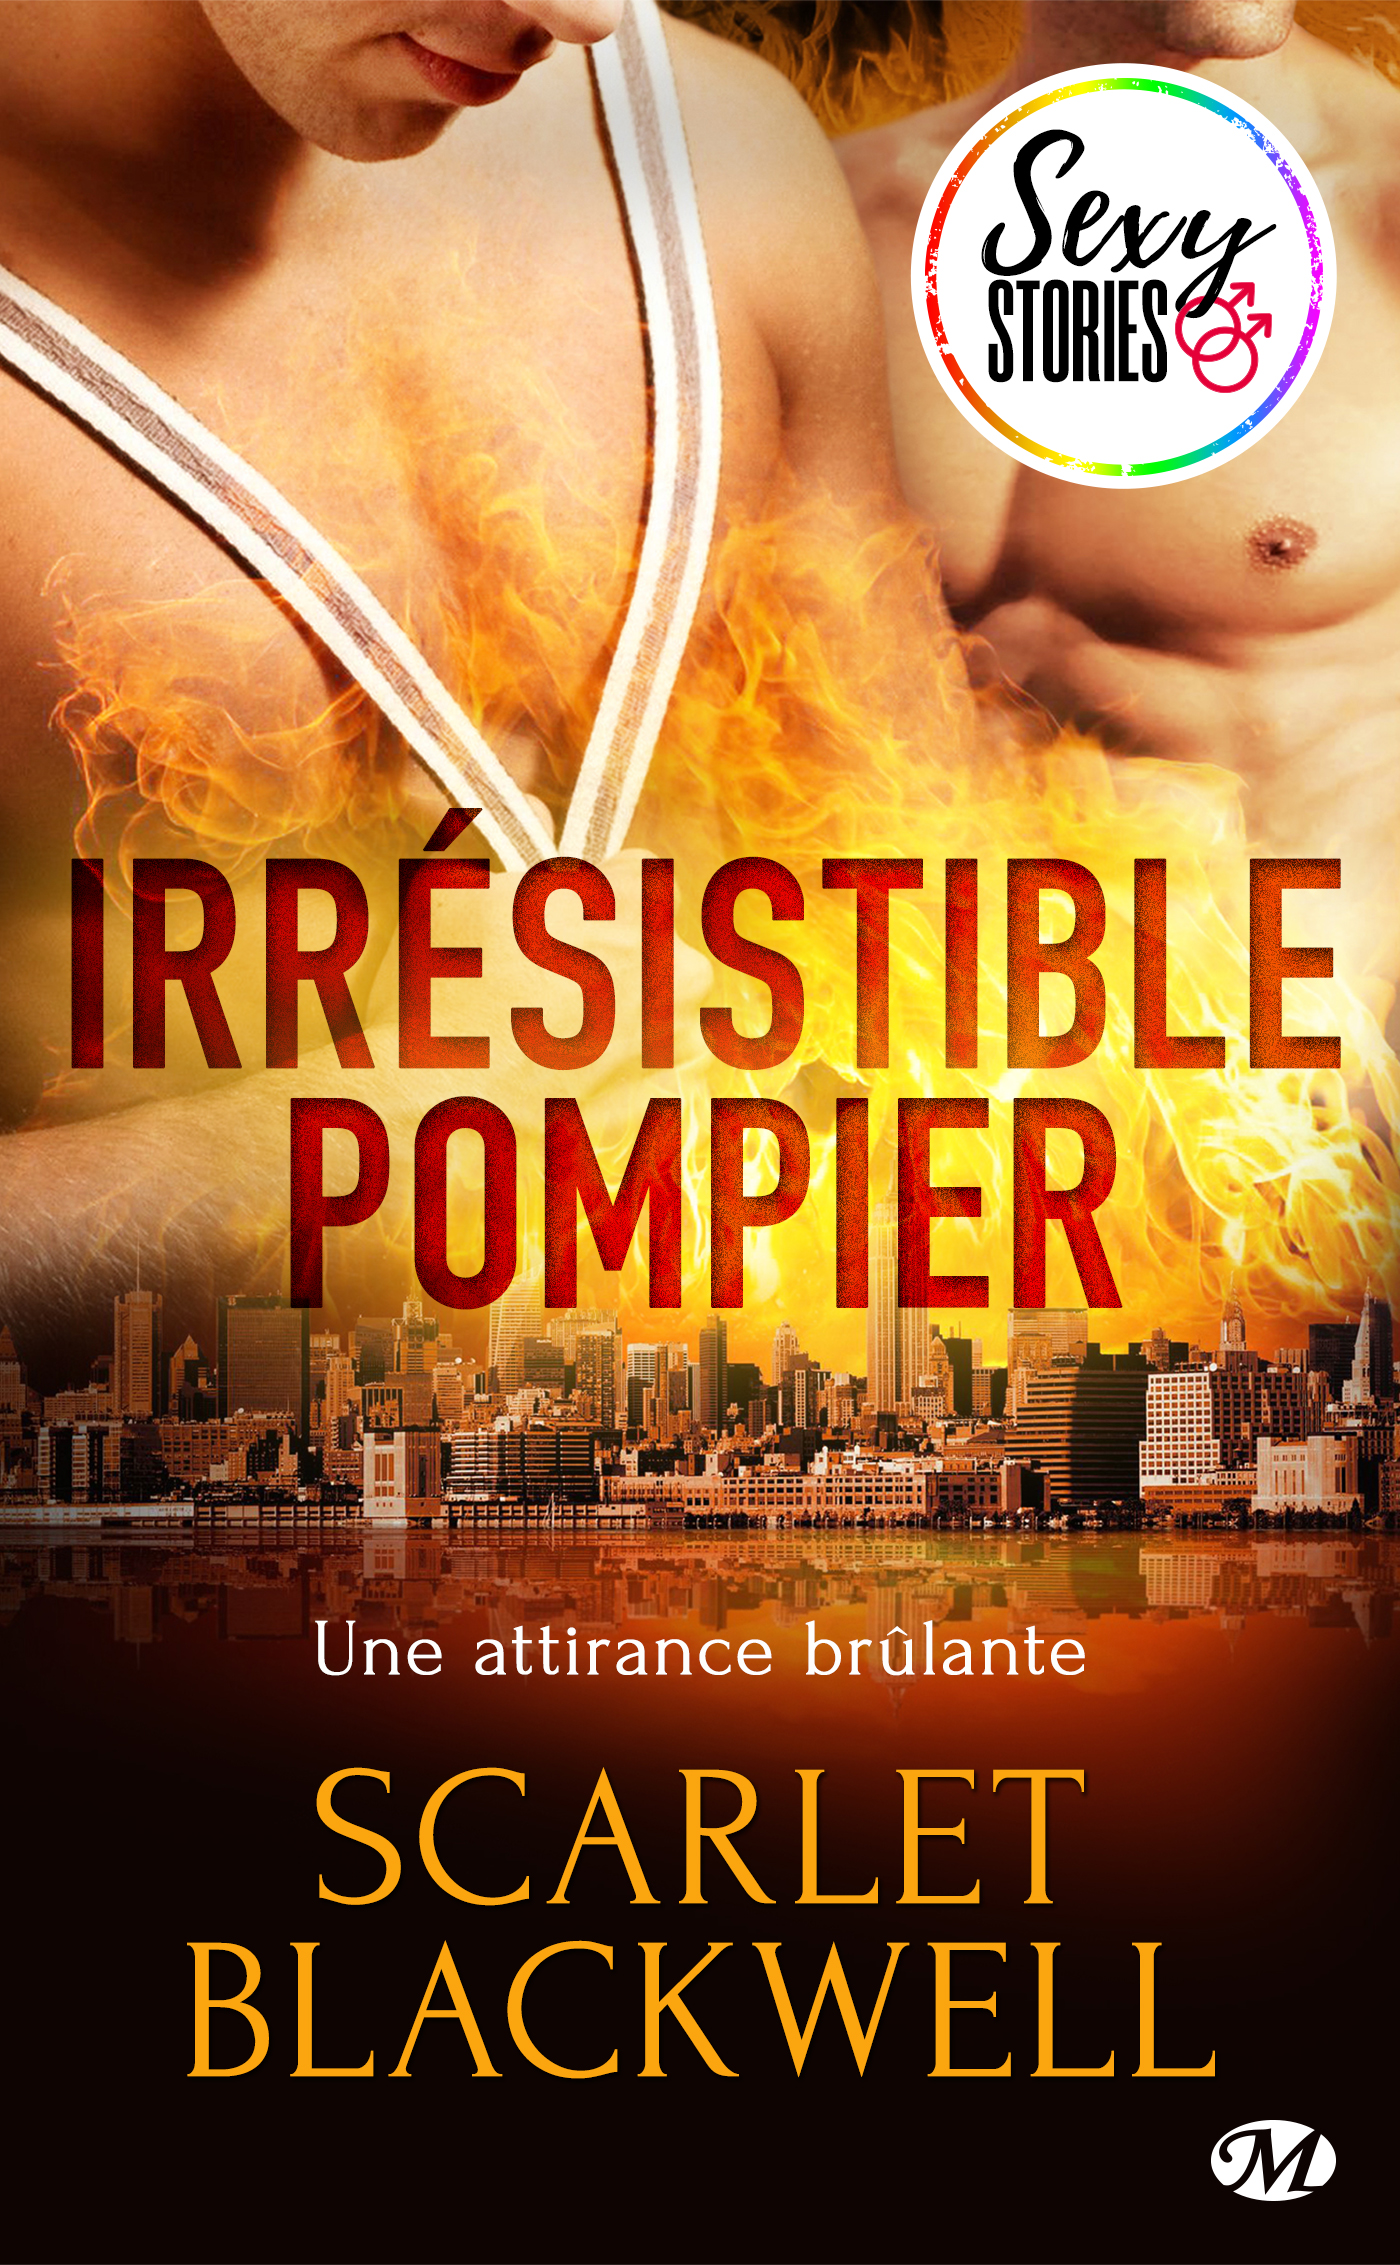 Irrésistible pompier - Sexy Stories